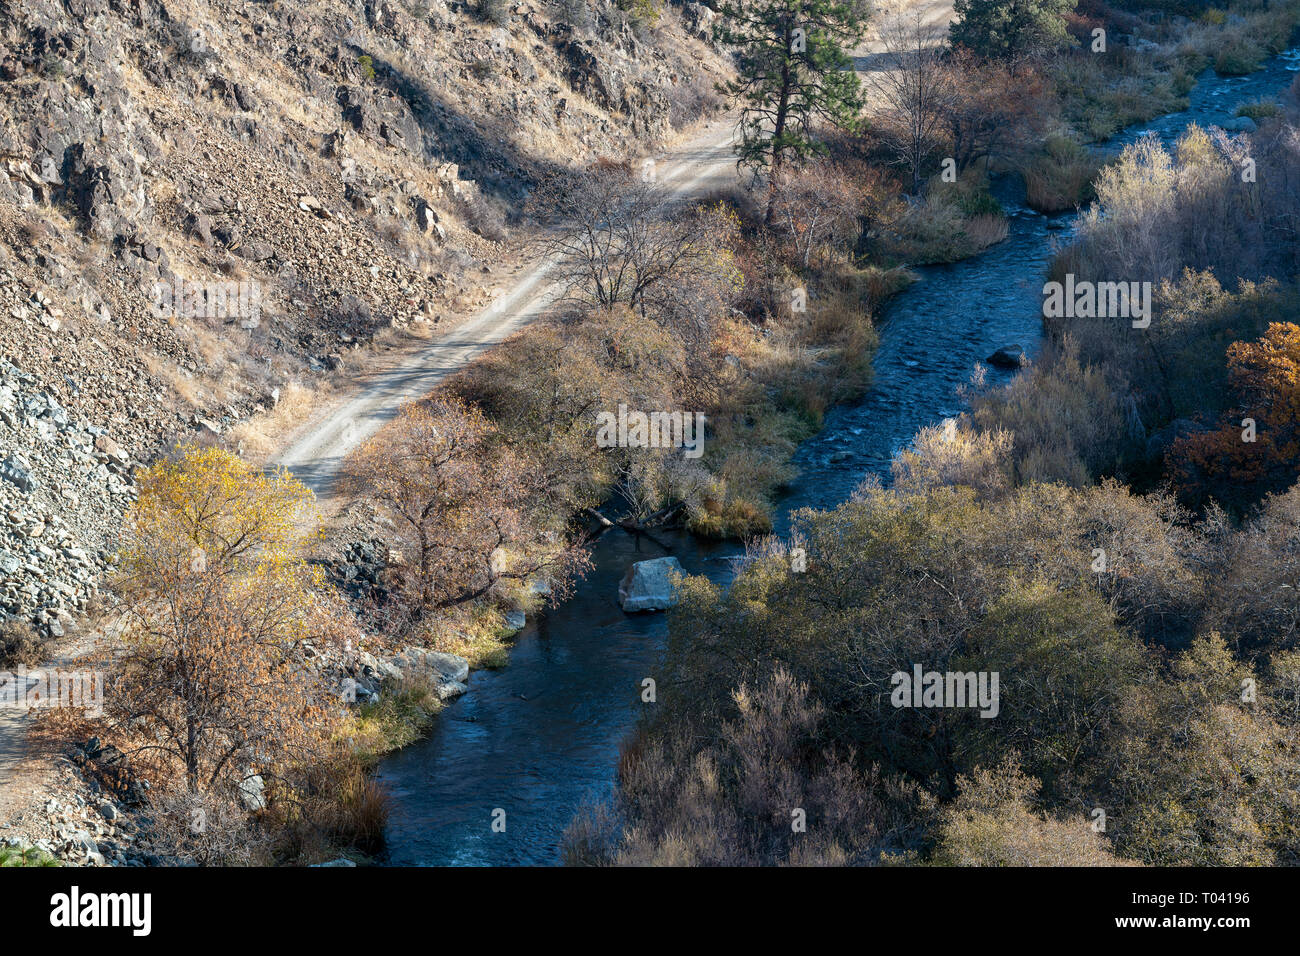 A dirt road next to the Shasta River in California, USA - Stock Image